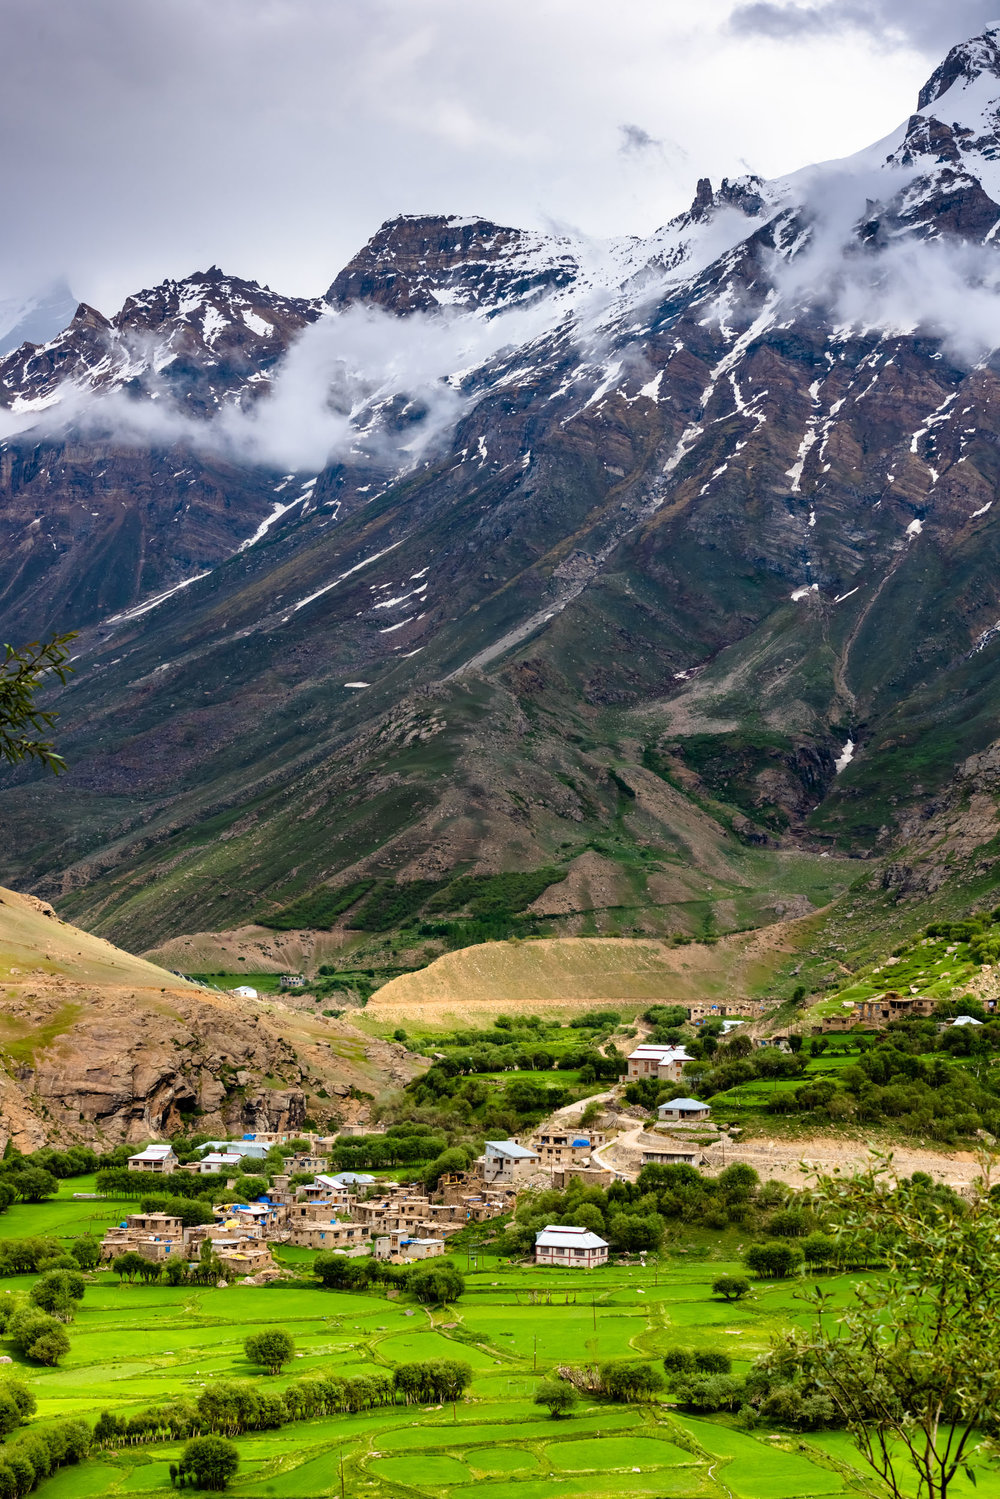 Tongul Village in Suru Valley